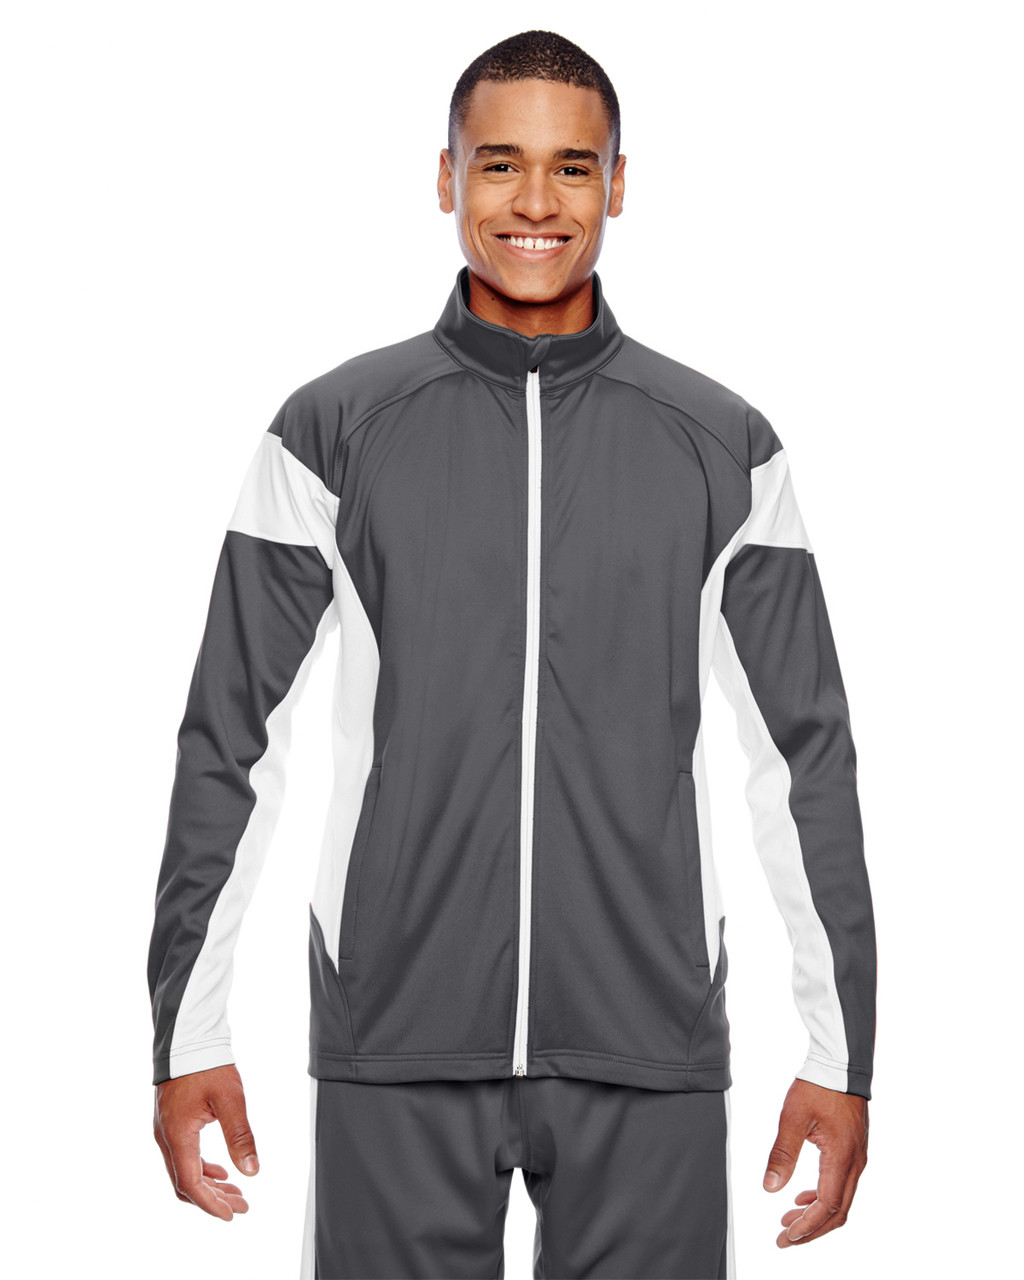 Graphite/White - TT34 Team 365 Men's Performance Full-Zip Jacket | Blankclothing.ca